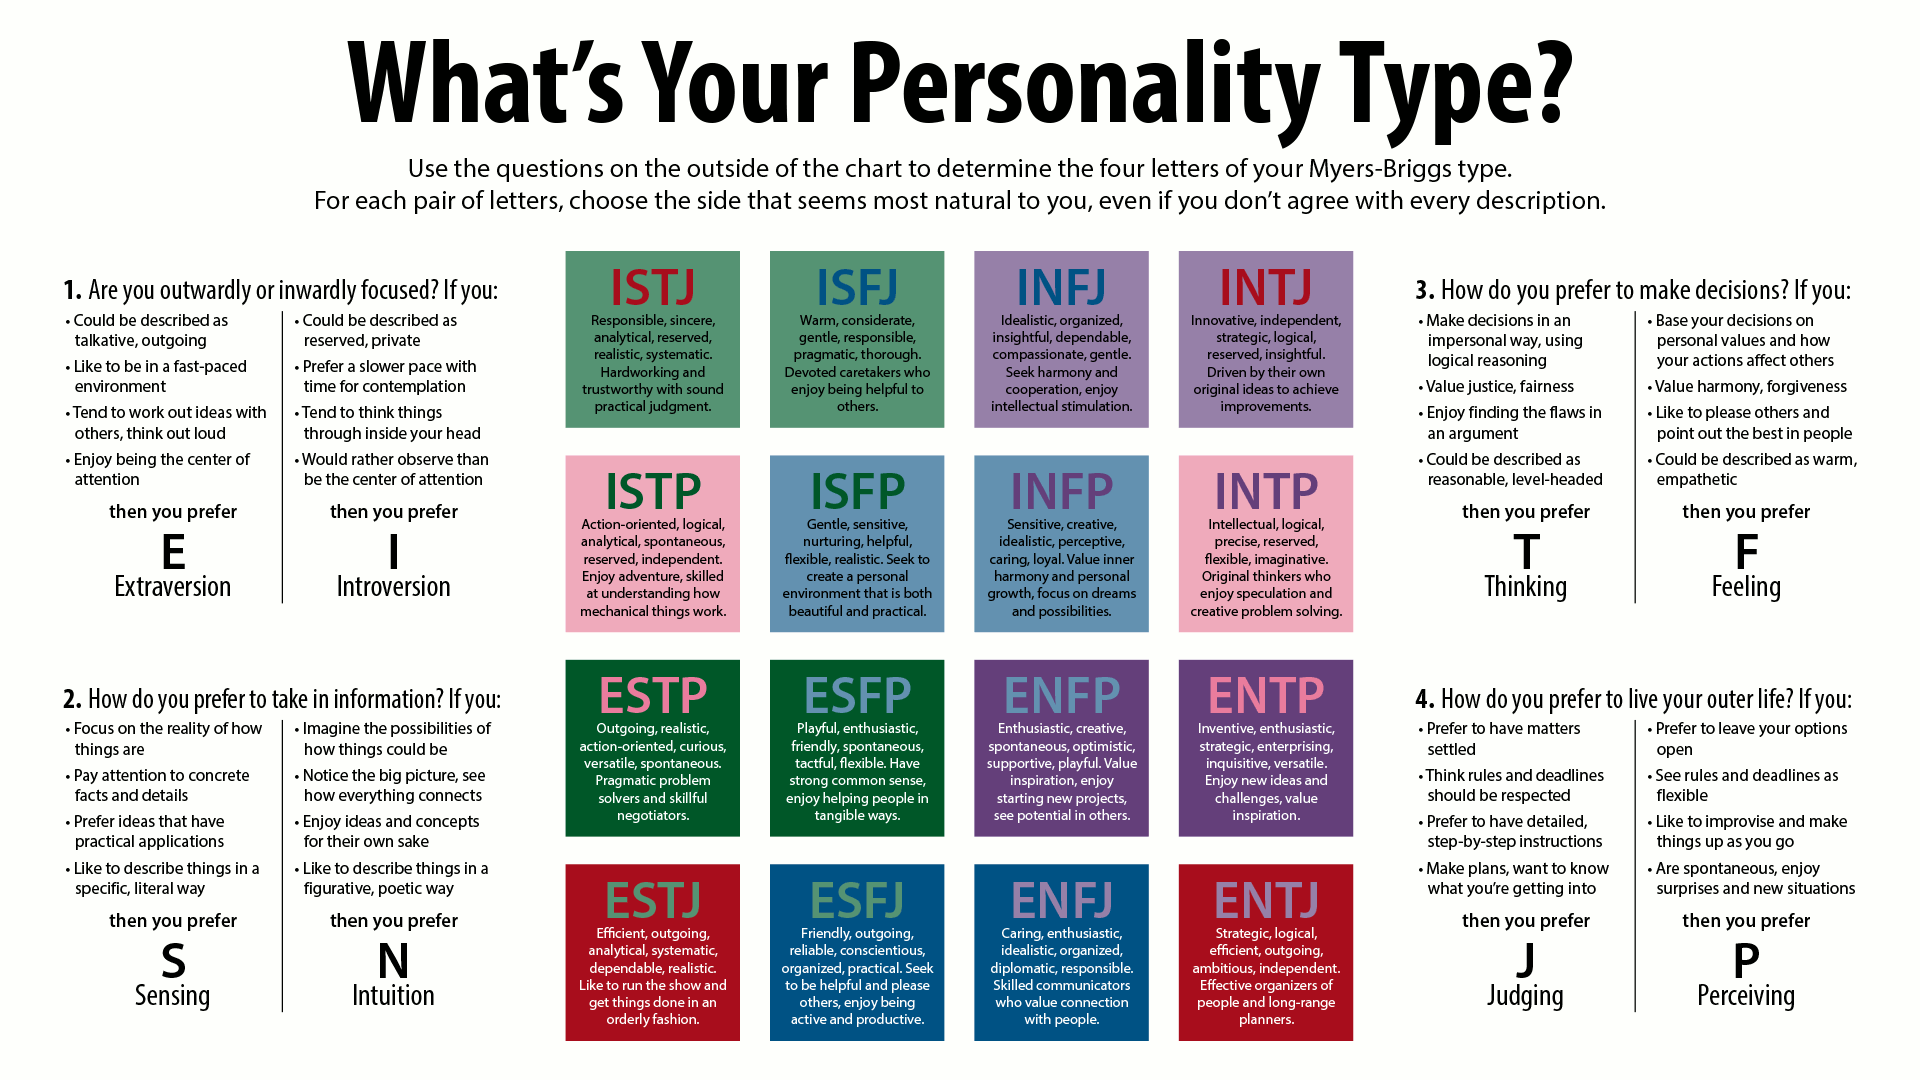 Online dating based on personality type